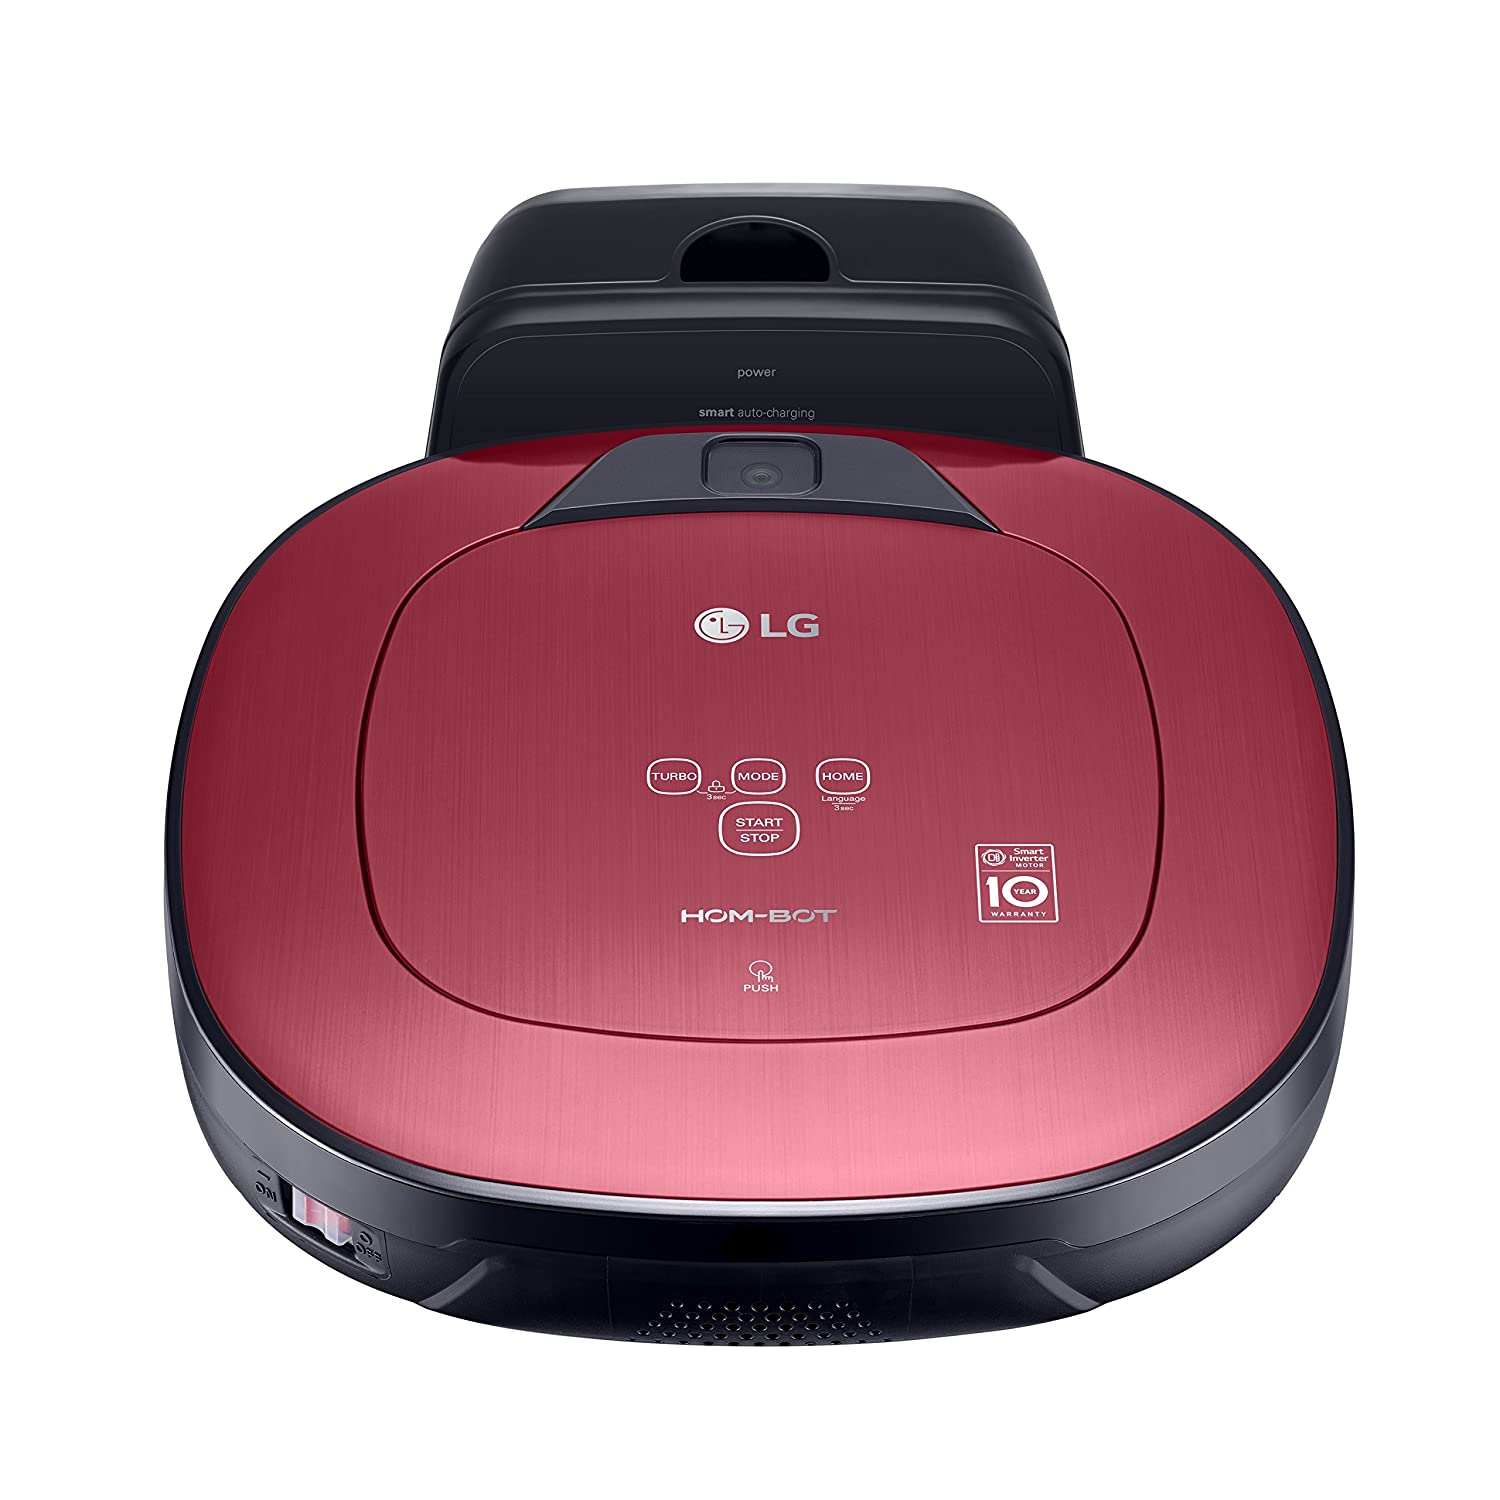 LG Electronics VRD 820 MRPC - Aspiradora, color Rojo: Amazon.es: Hogar